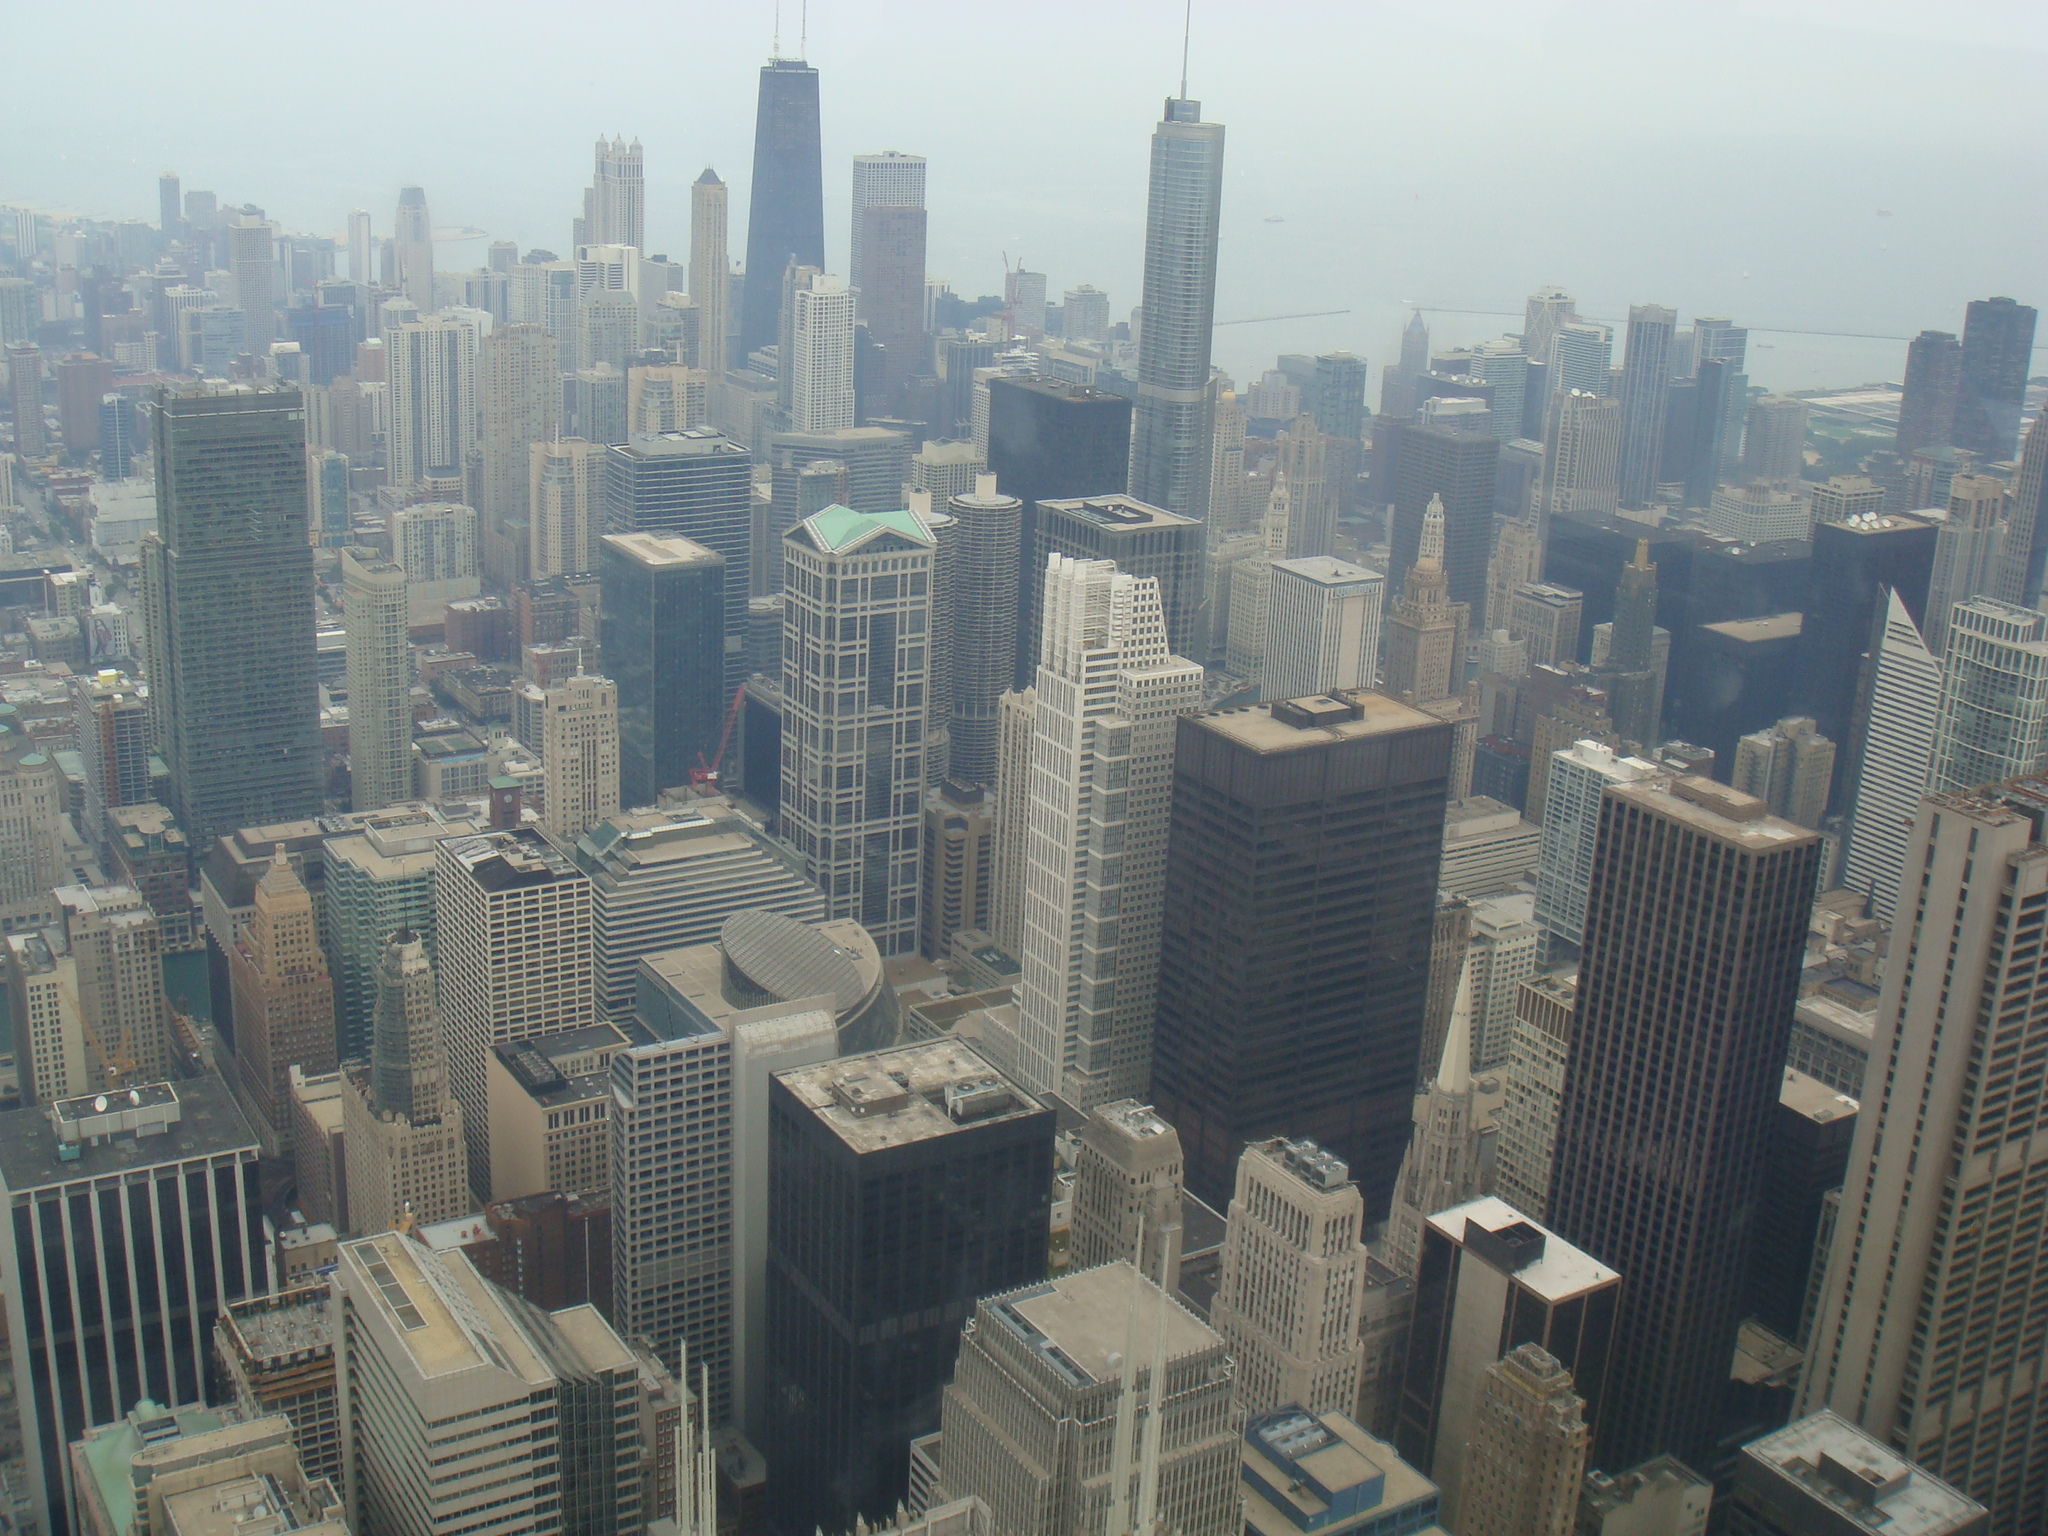 File:Sears Tower (Willis Tower) Observation Deck. Chicago ...